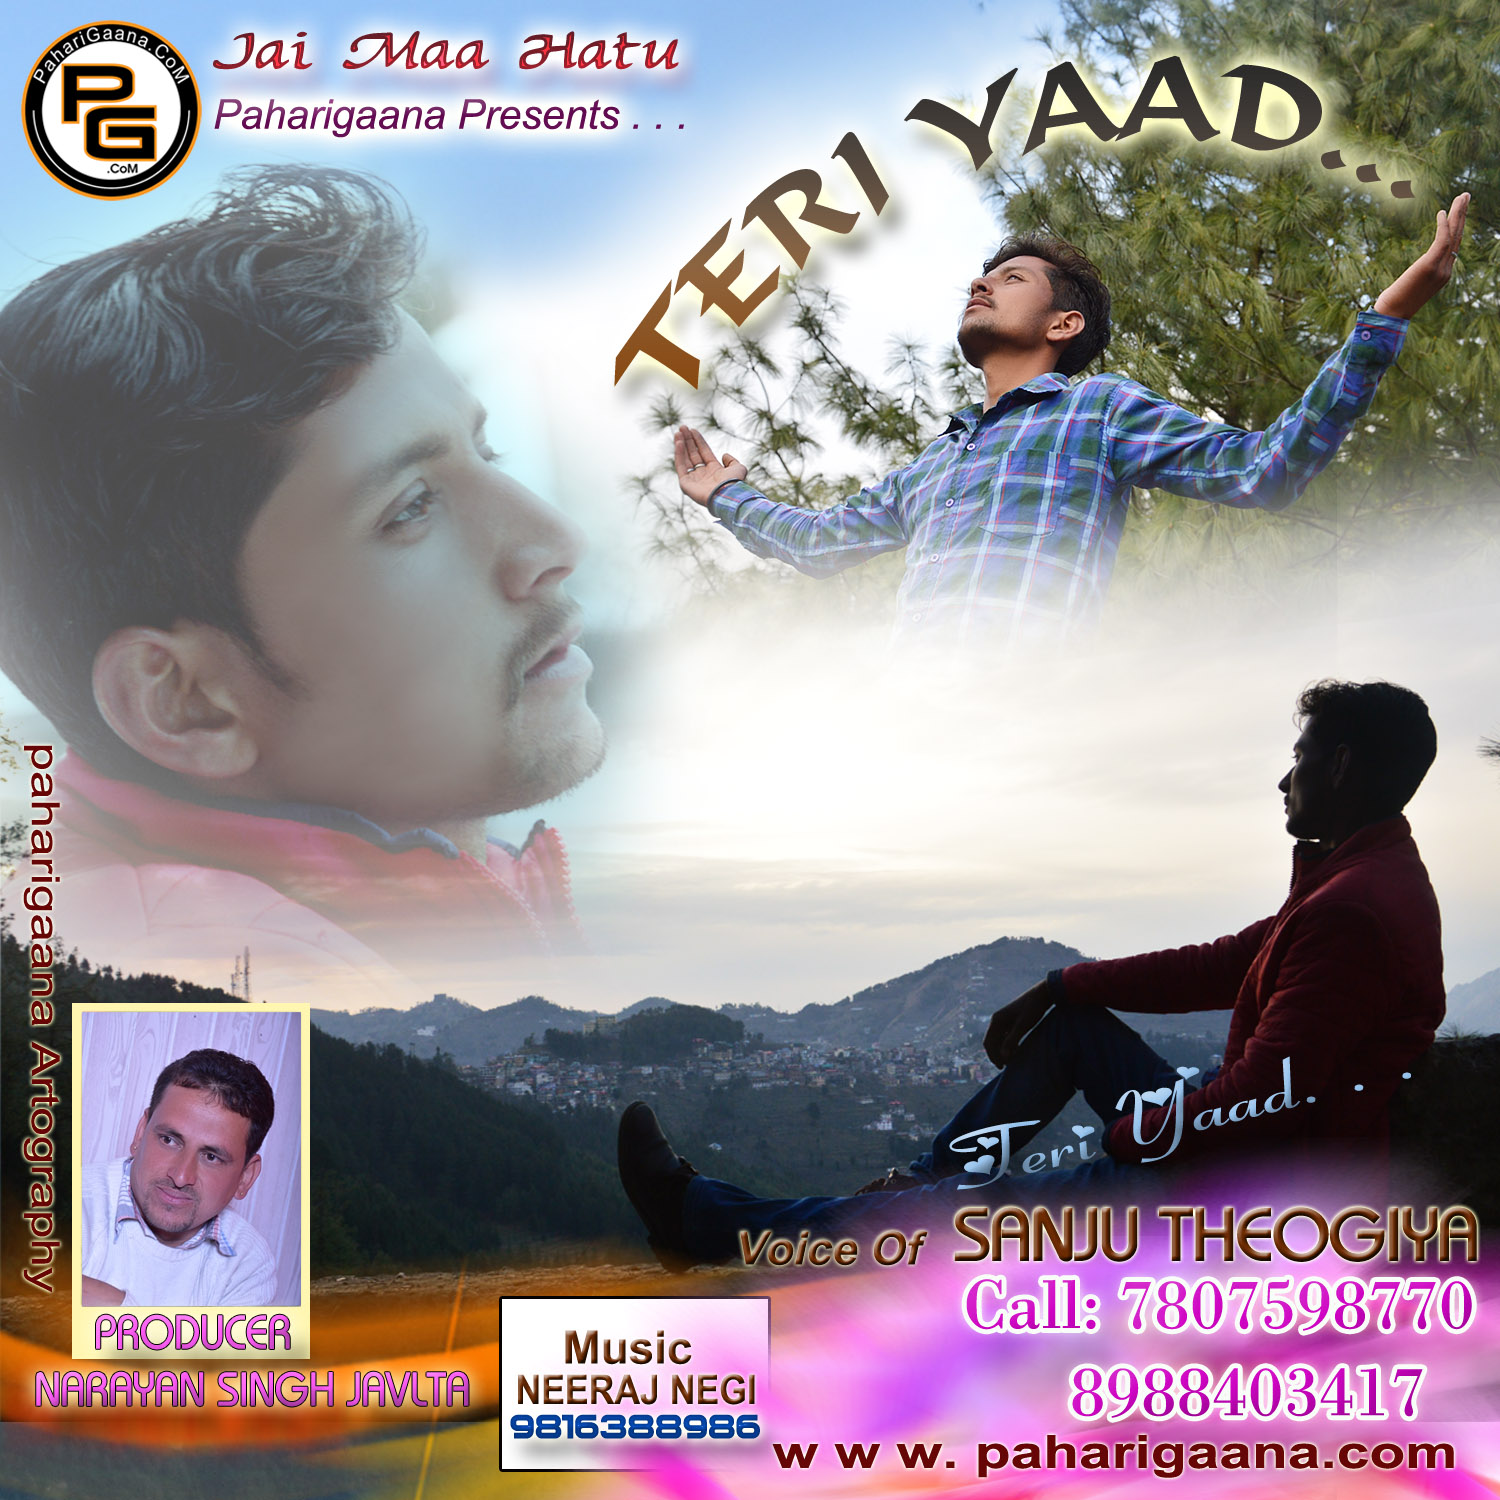 Jabhi Teri Yaad Song Downloadmp3: Teri Yaad Mp3 Free Download, Himachali Albums, Sanju